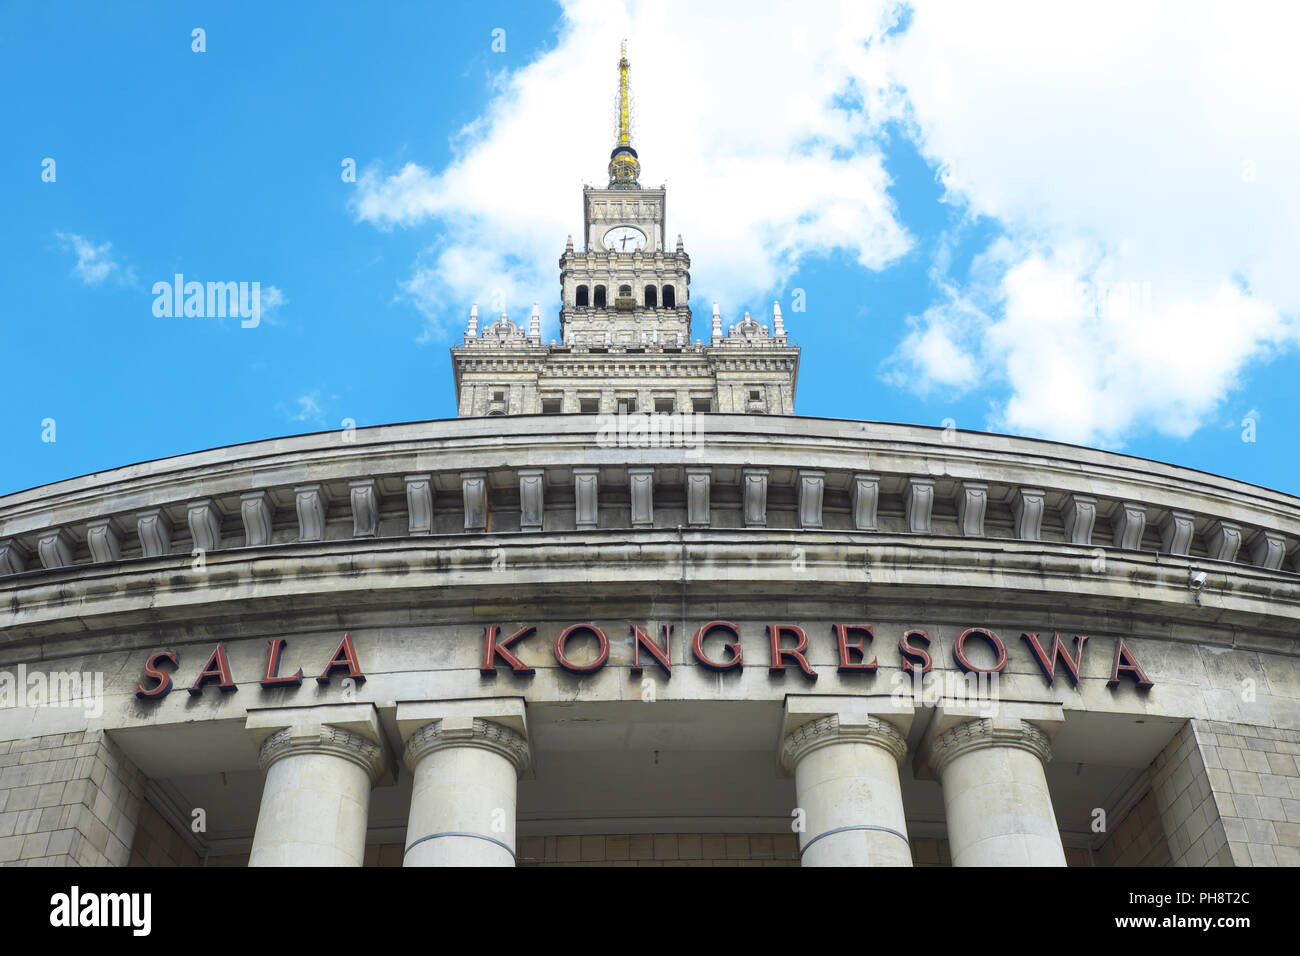 Warsaw Poland the Palace of Culture and Science in the city centre built in the 1950s Stock Photo